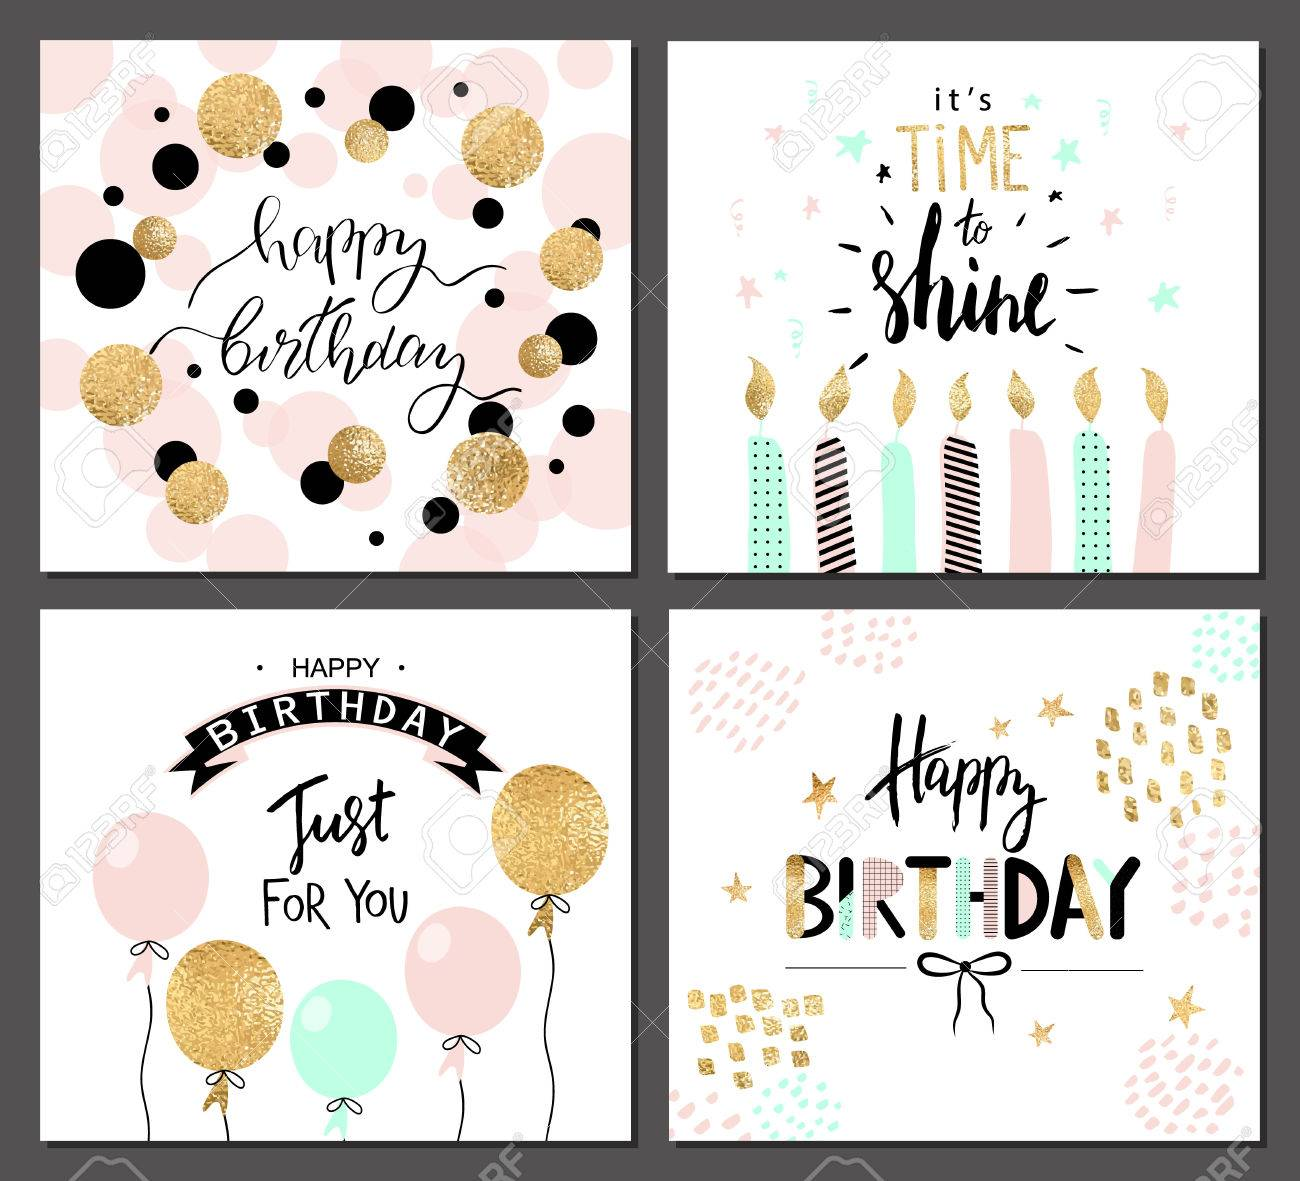 Happy birthday greeting cards and party invitation templates happy birthday greeting cards and party invitation templates with lettering text vector illustration hand stopboris Image collections